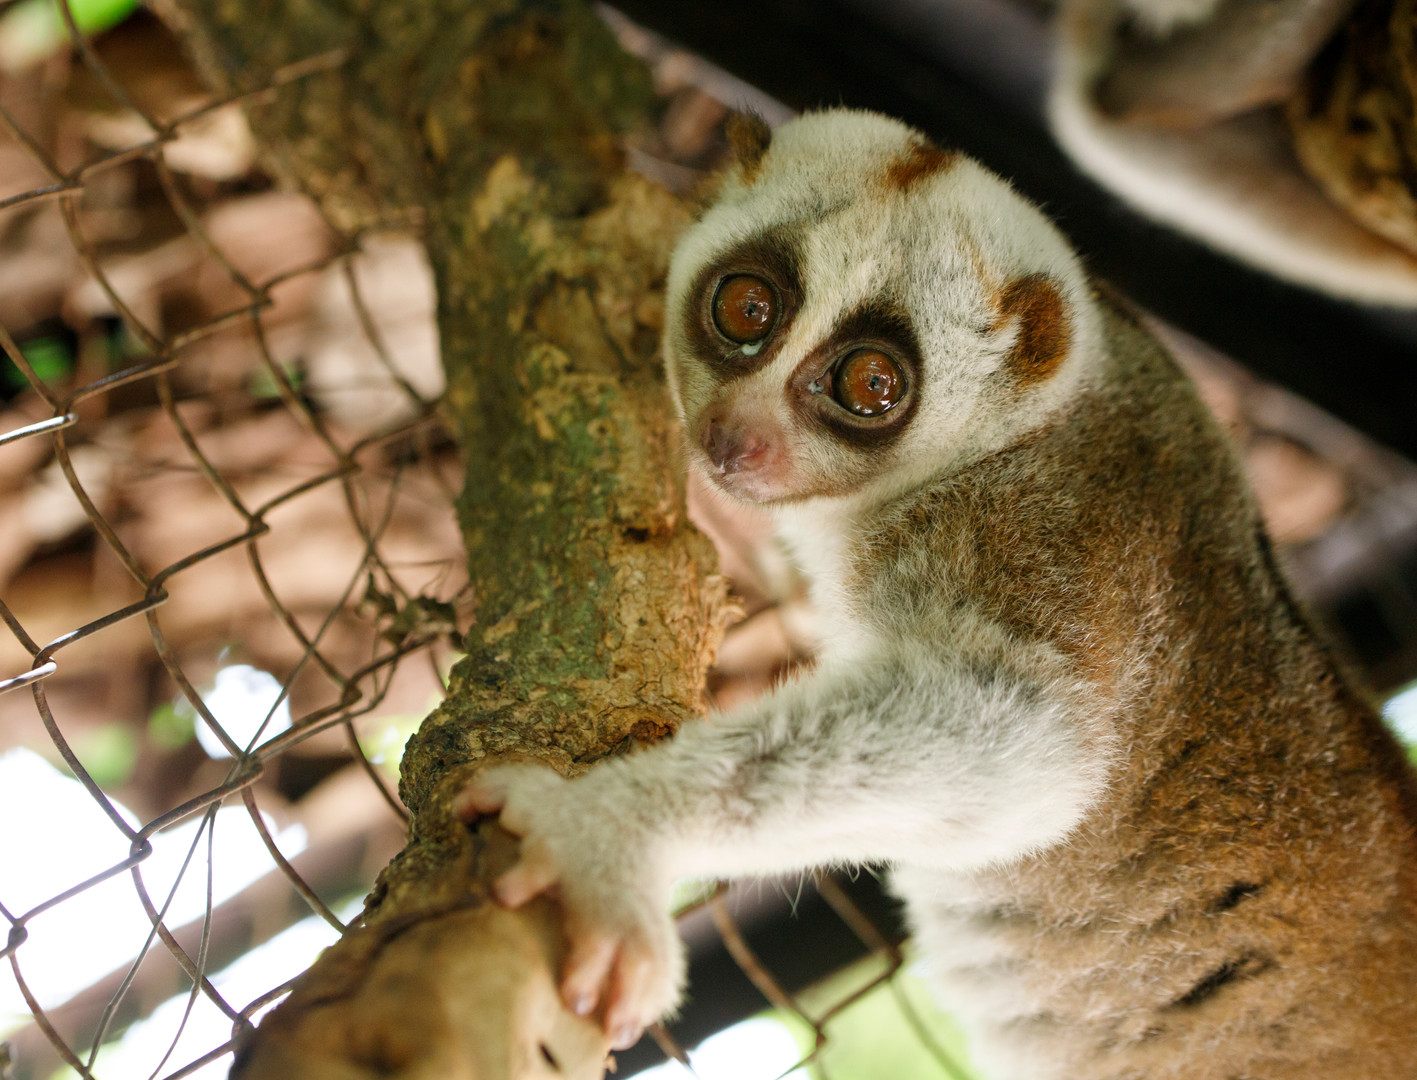 Slow Loris are the only primate known to be venomous. Unfortunately this mostly nocturnal creature often ends up in the pet trade, which it is not at all well suited to. As with some other species, the internet has further allowed a desire to keep these animals to grow. Wildlife Alliance aims to educate the public about responsible treatment of wildlife and forests in Cambodia. Phnom Tamao Wildlife Rescue Centre.